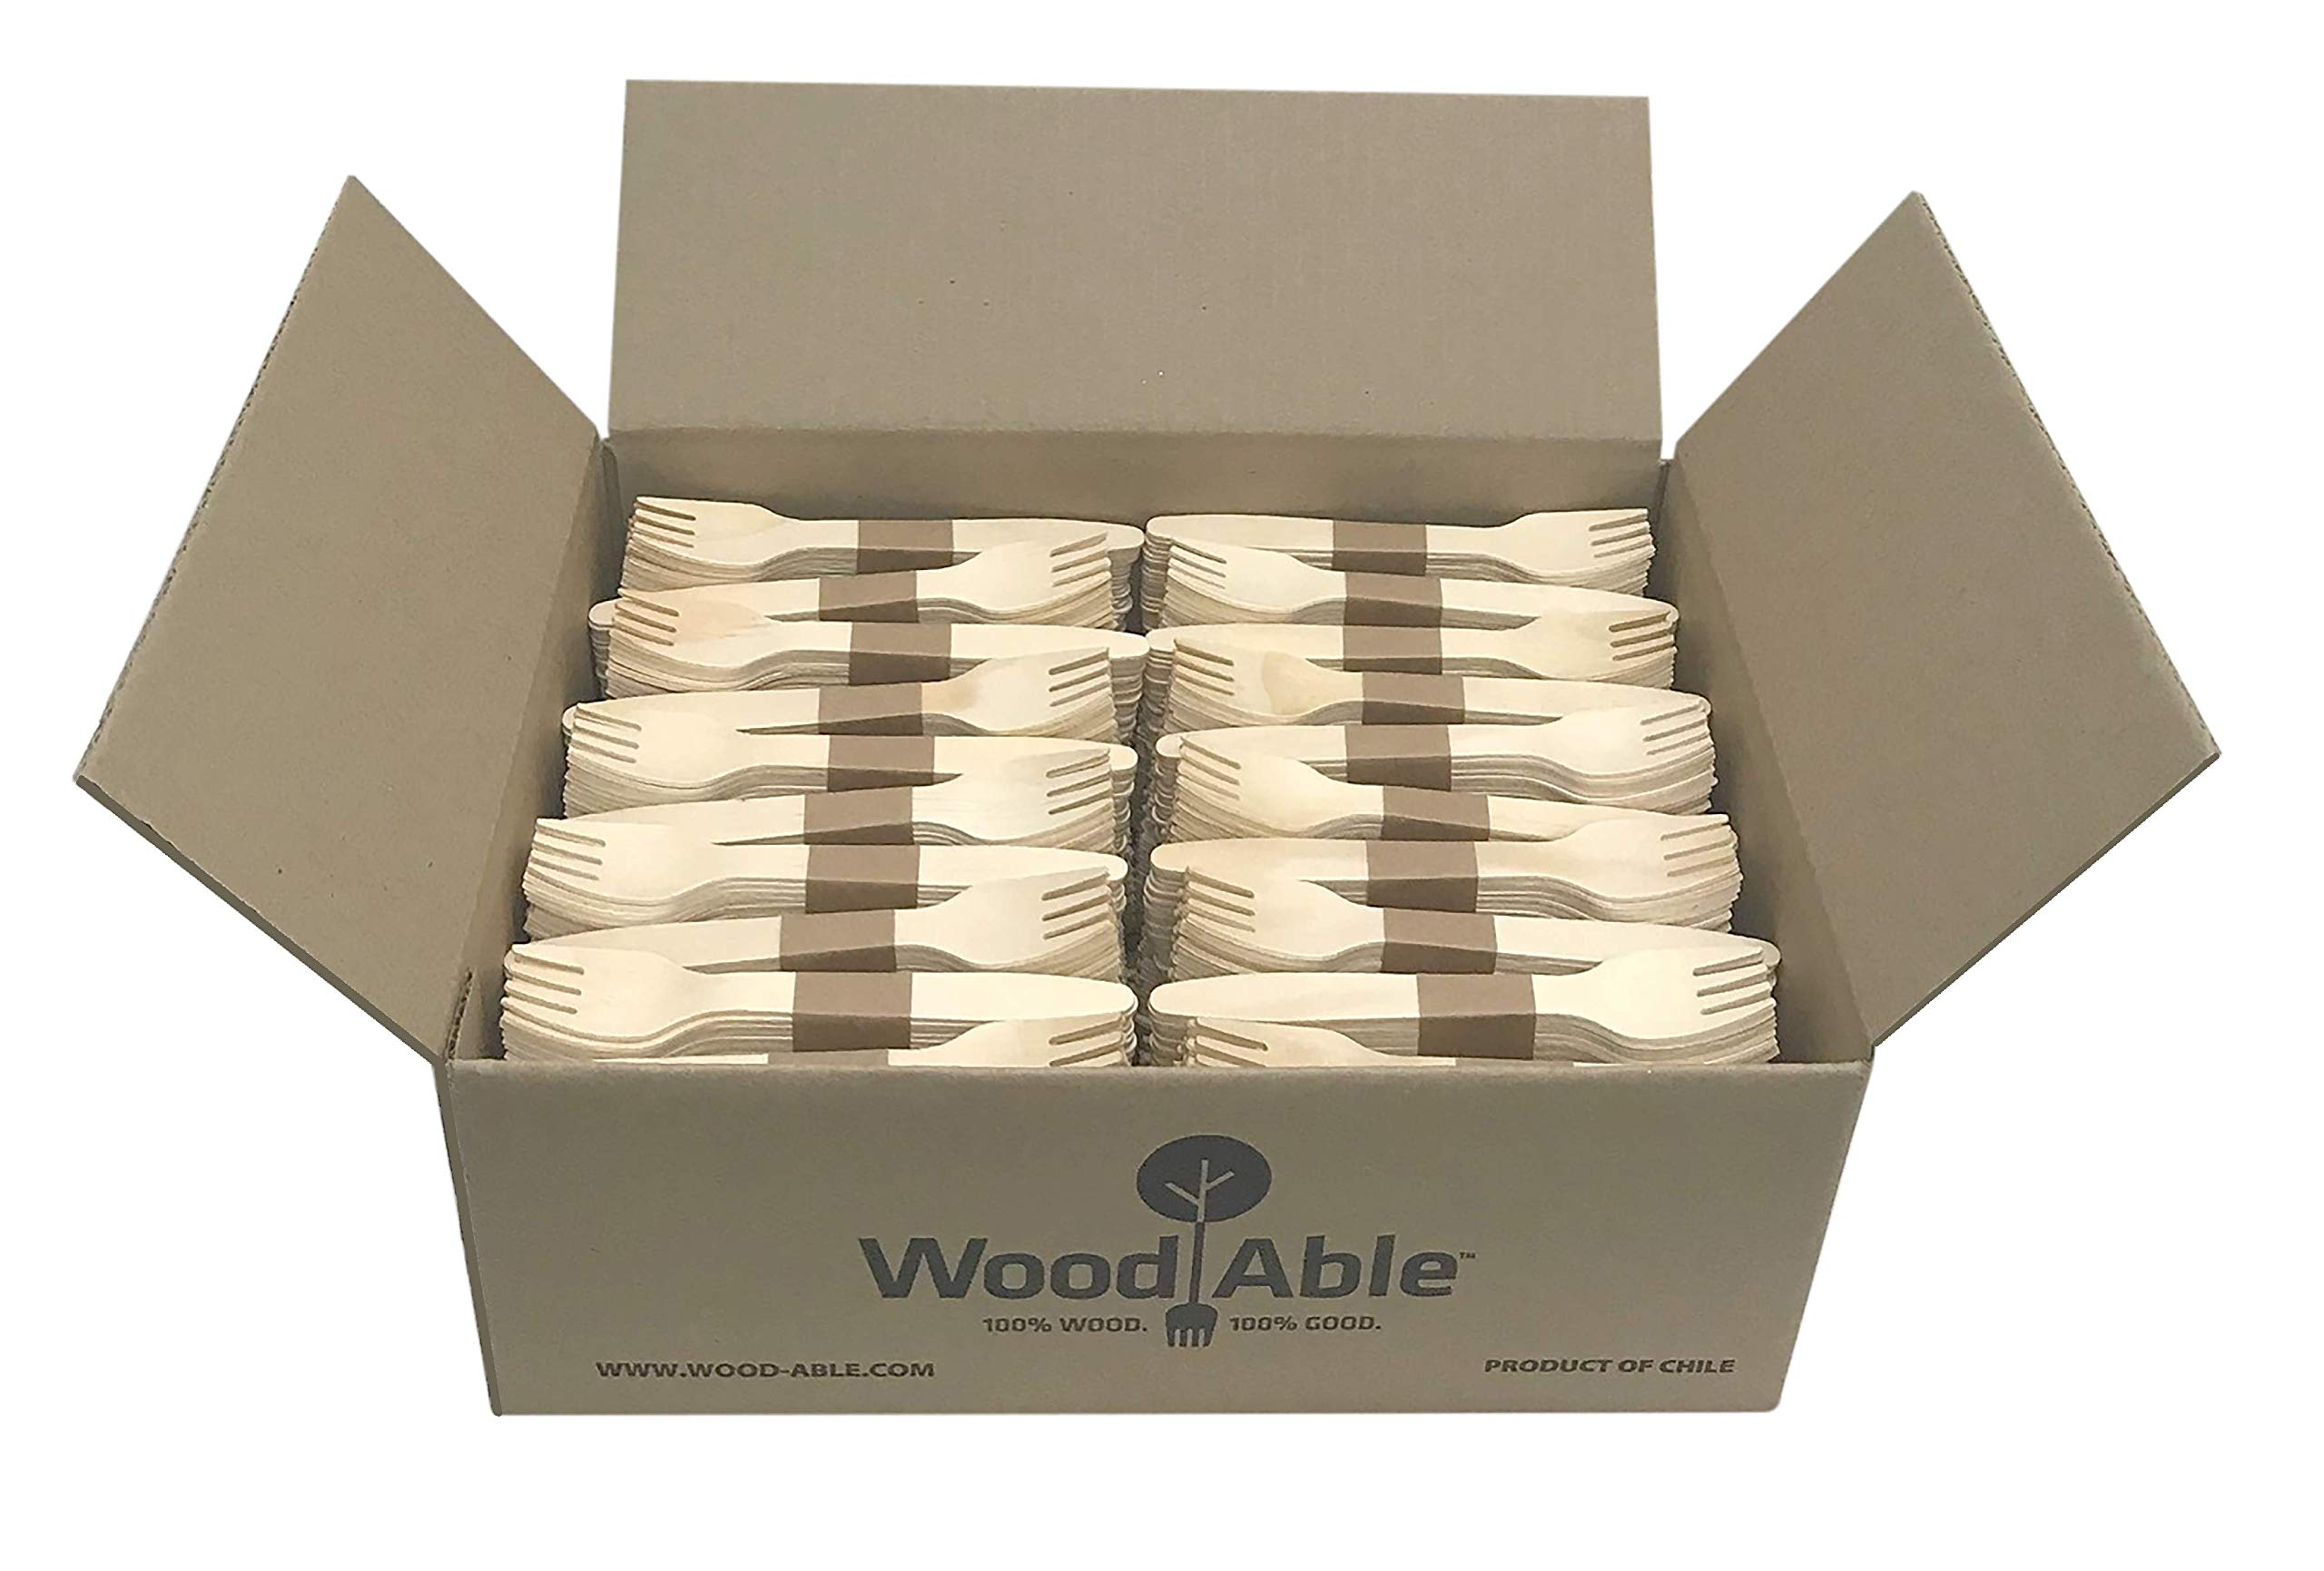 WoodAble - Disposable Wooden Forks | Alternate to Plastic Cutlery - Eco Biodegradable Replacements (1,000 Count) by WoodAble